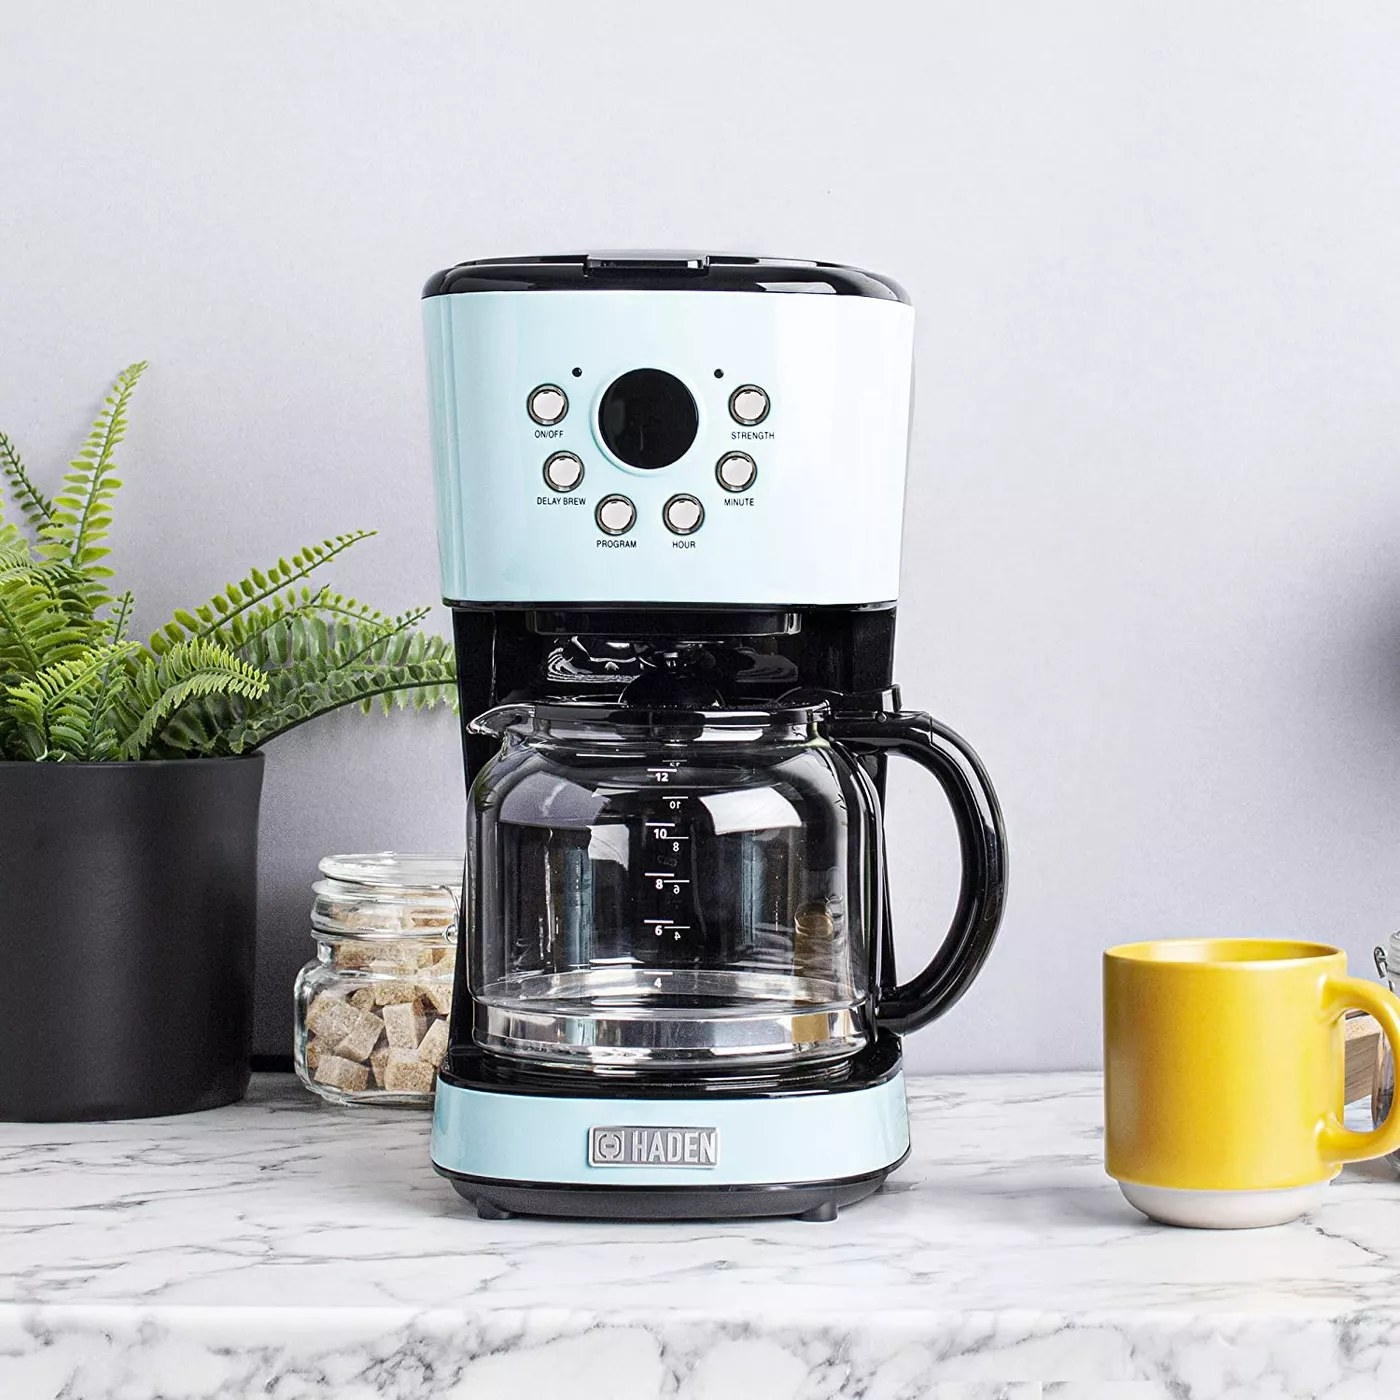 The turquoise coffee maker and a glass carafe